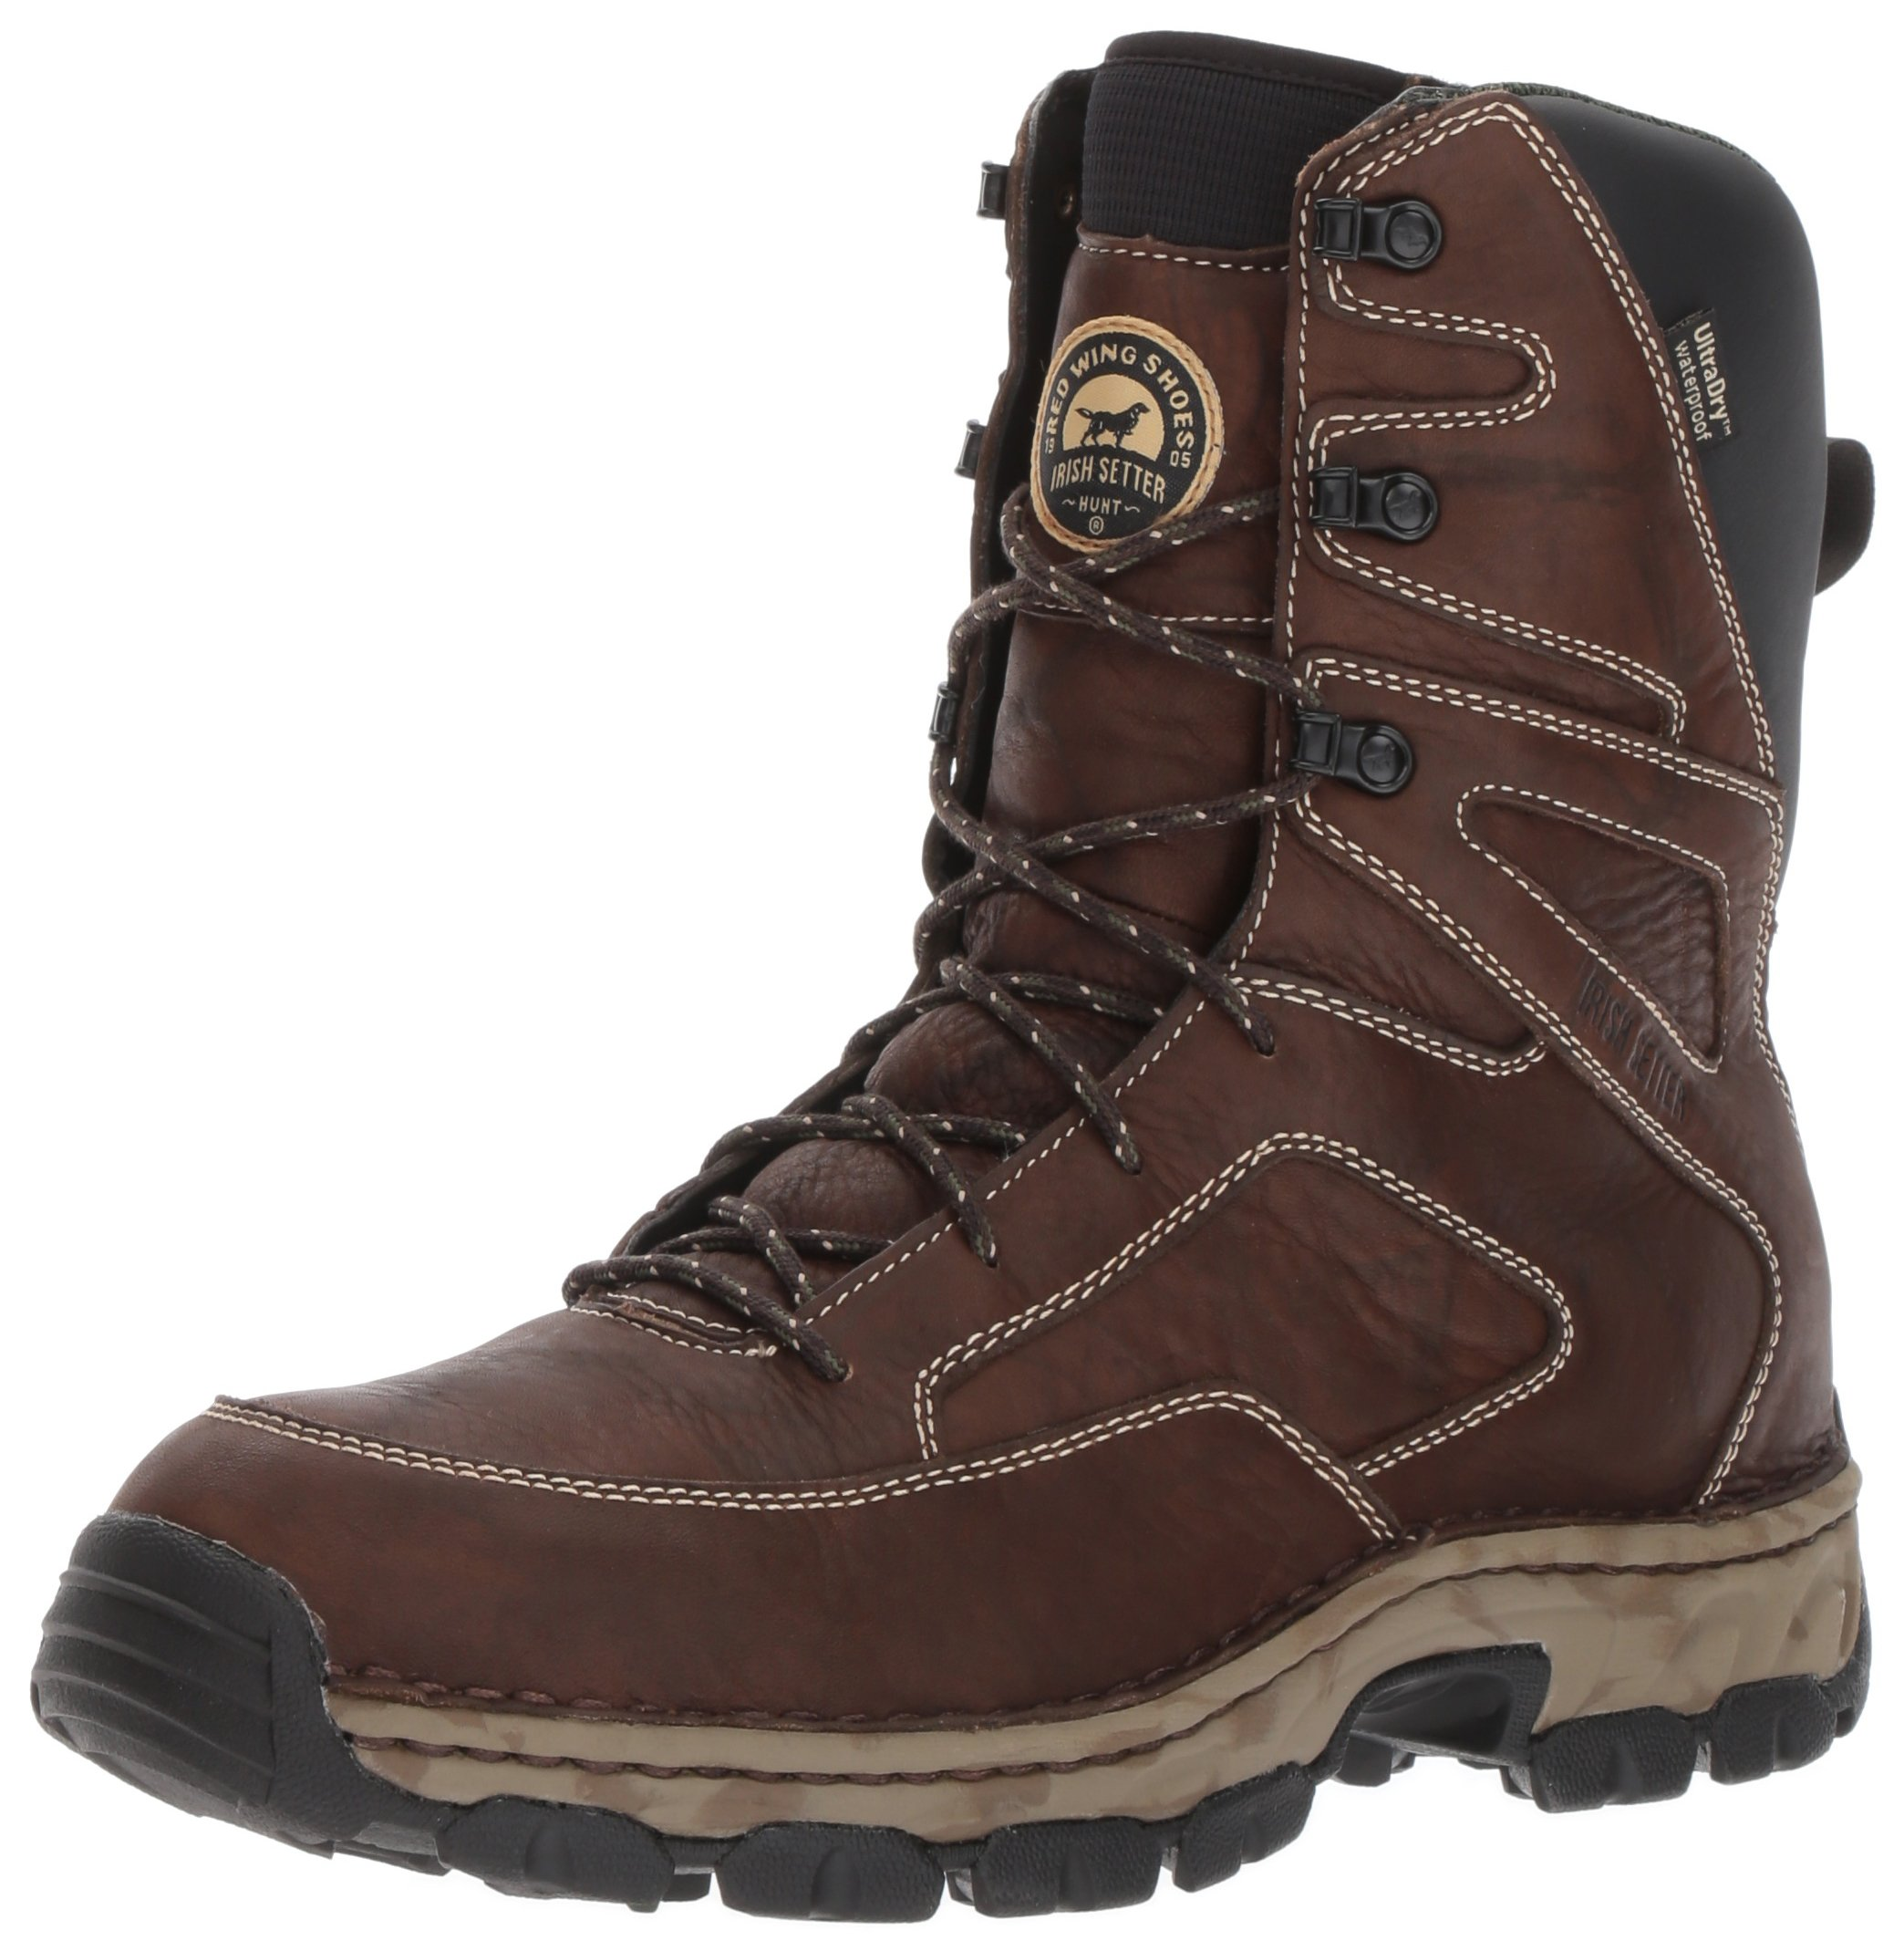 Irish Setter Men's Havoc XT-810 Hunting Shoes, Brown, 12 D US